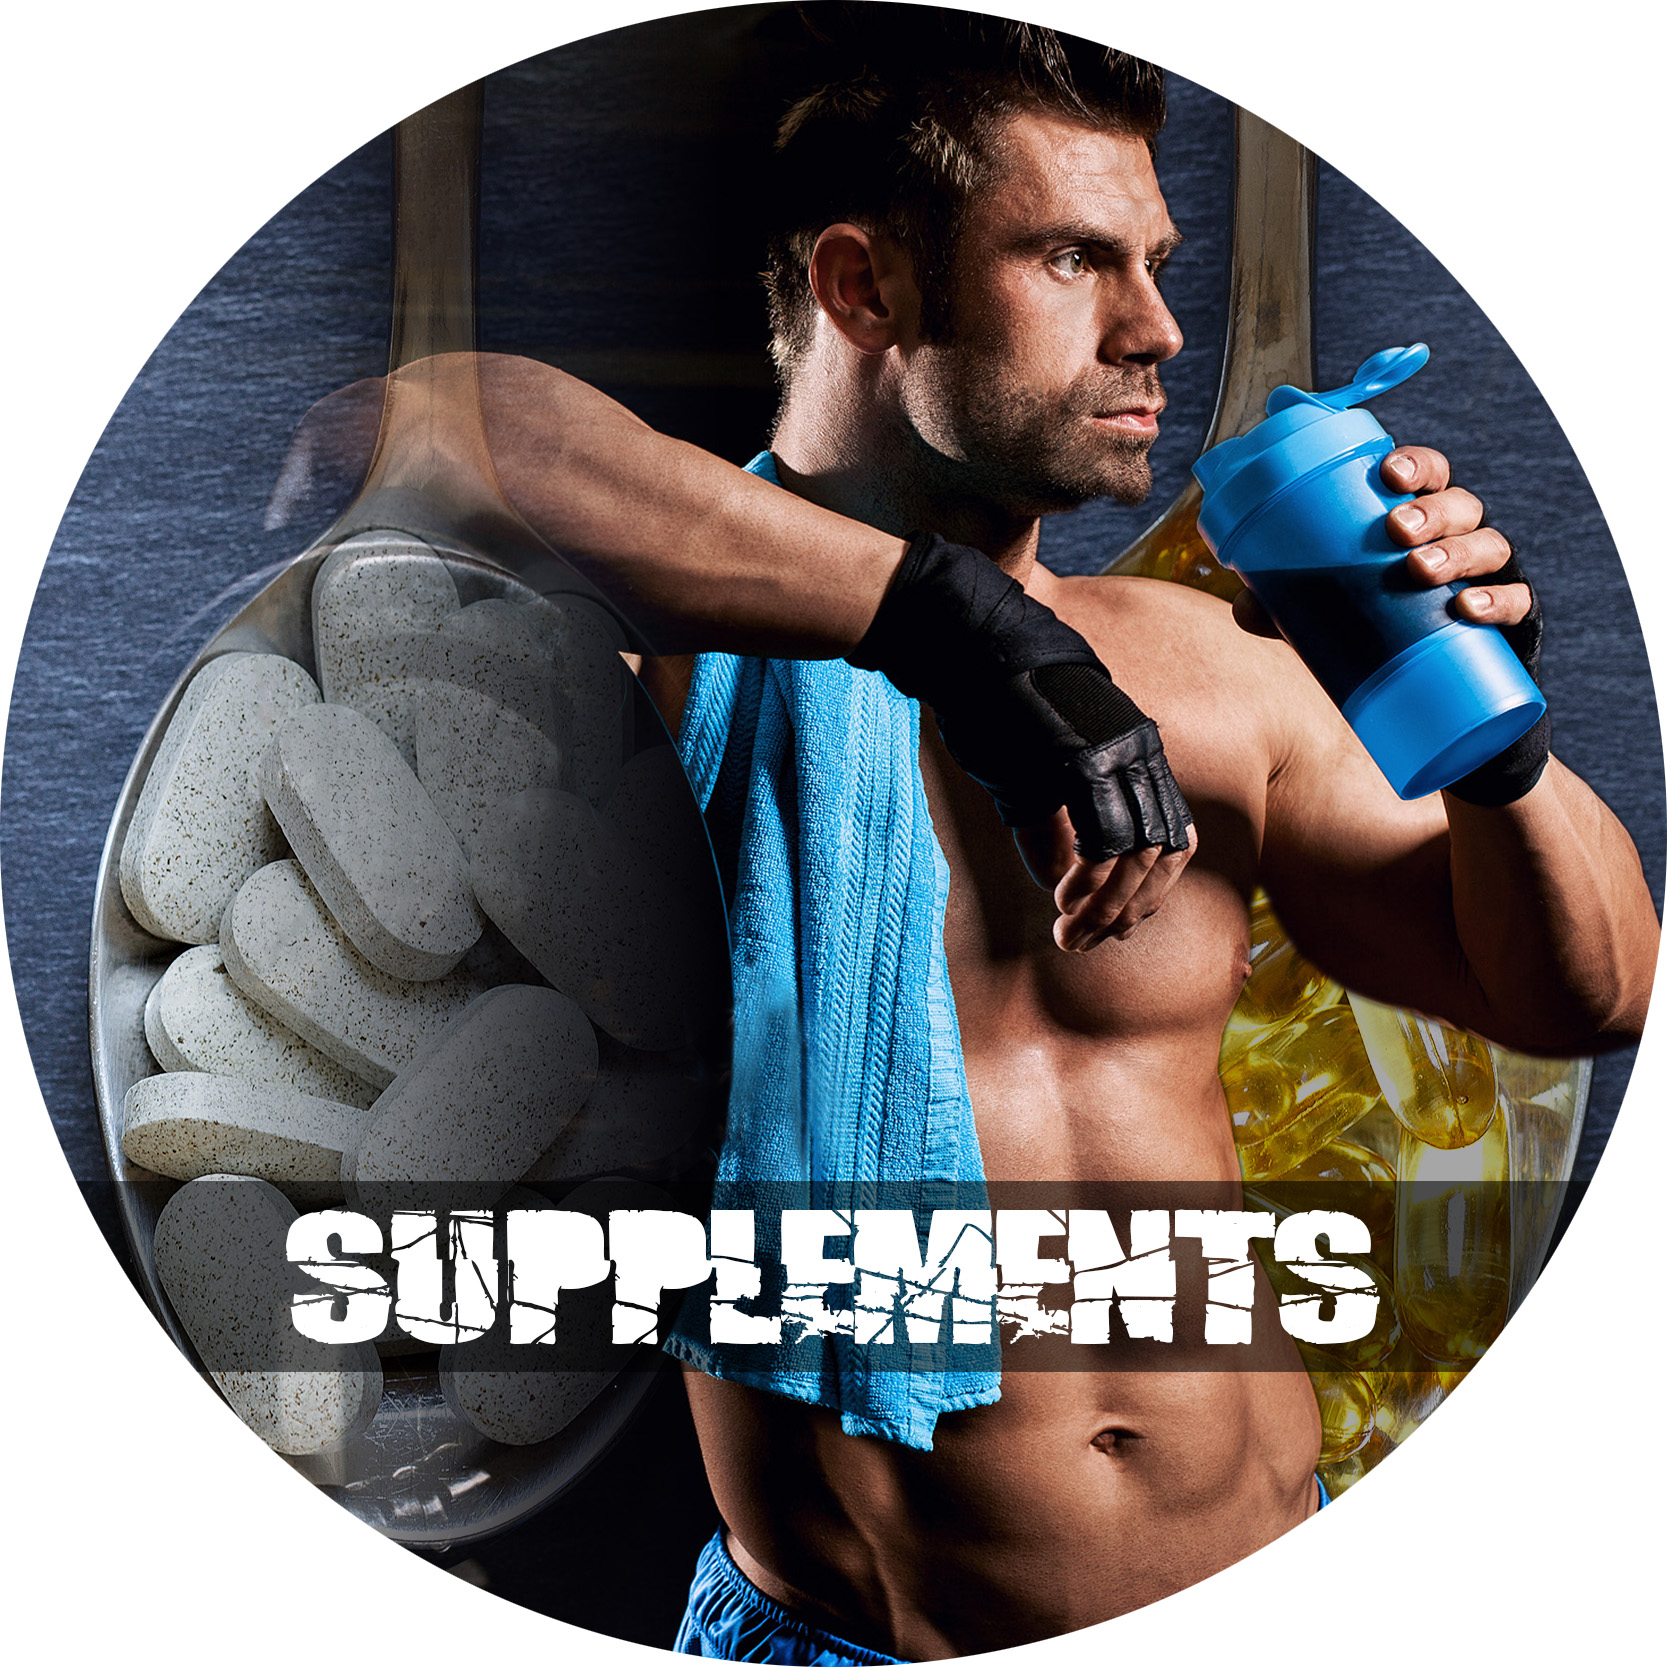 Supplementation Circle - AHP (No Shadow).jpg